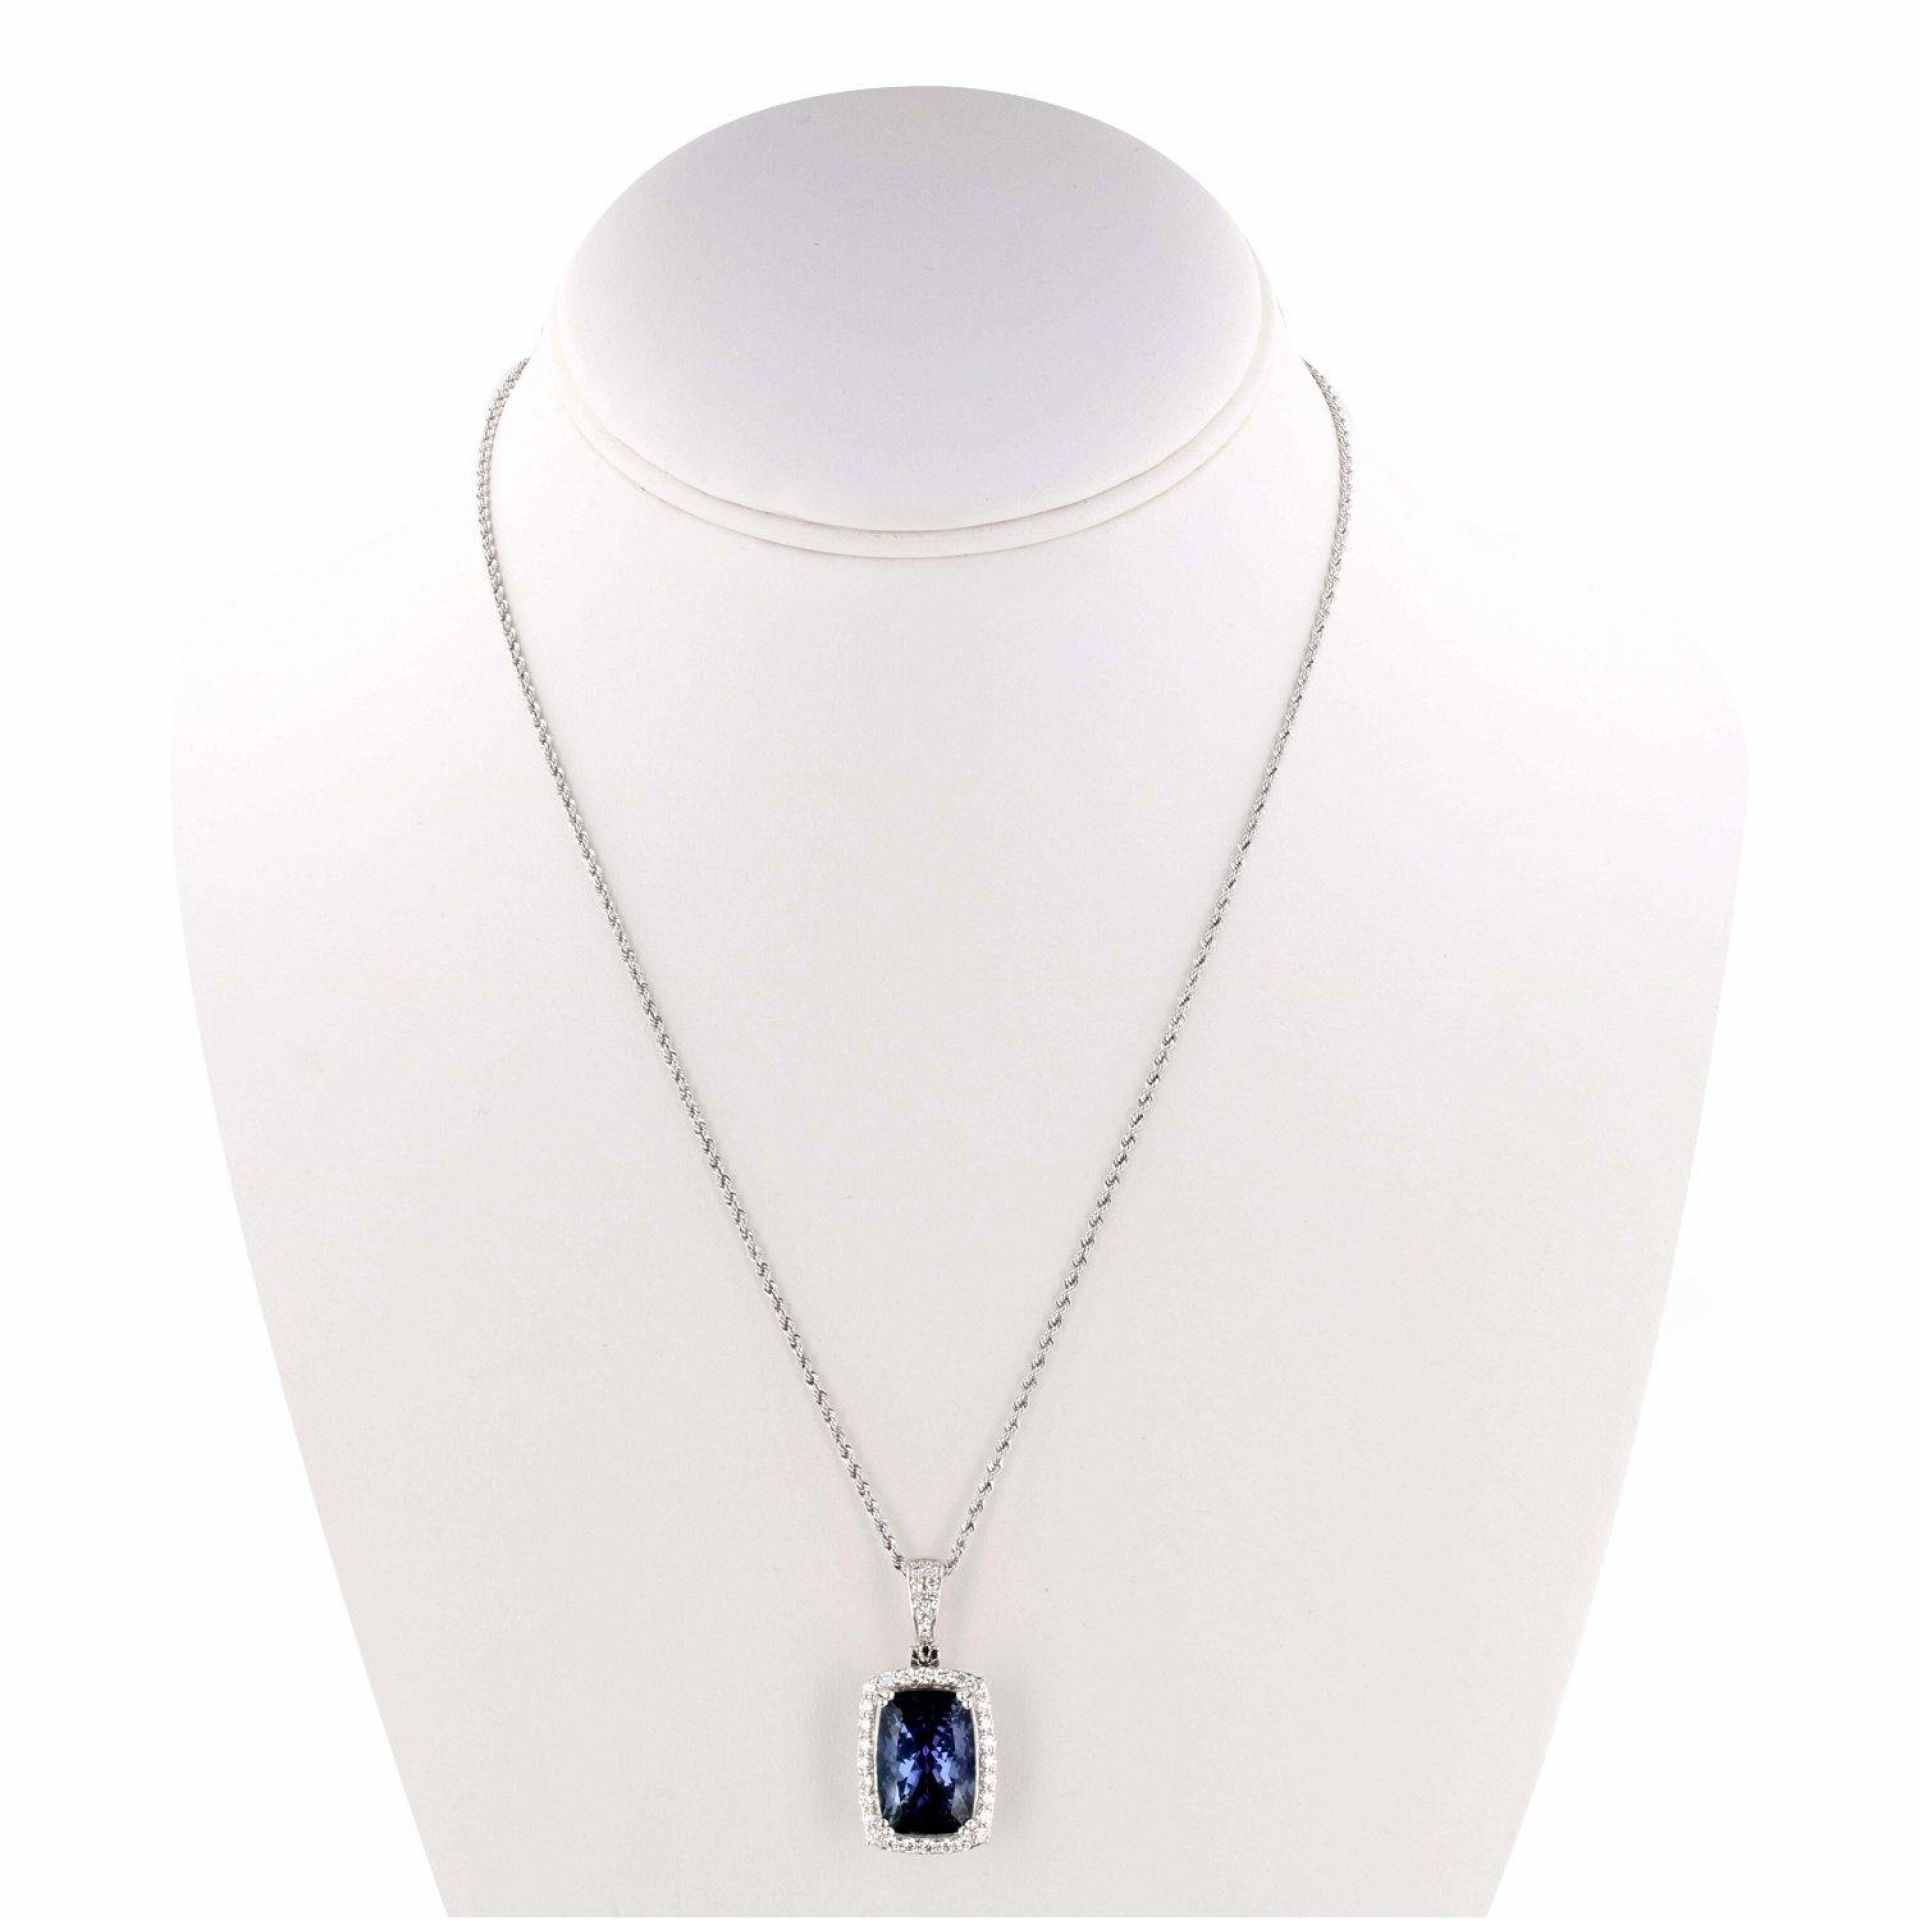 13.89ct Tanzanite and 0.73ctw Diamond Platinum Pendant/Necklace (GIA CERTIFIED)